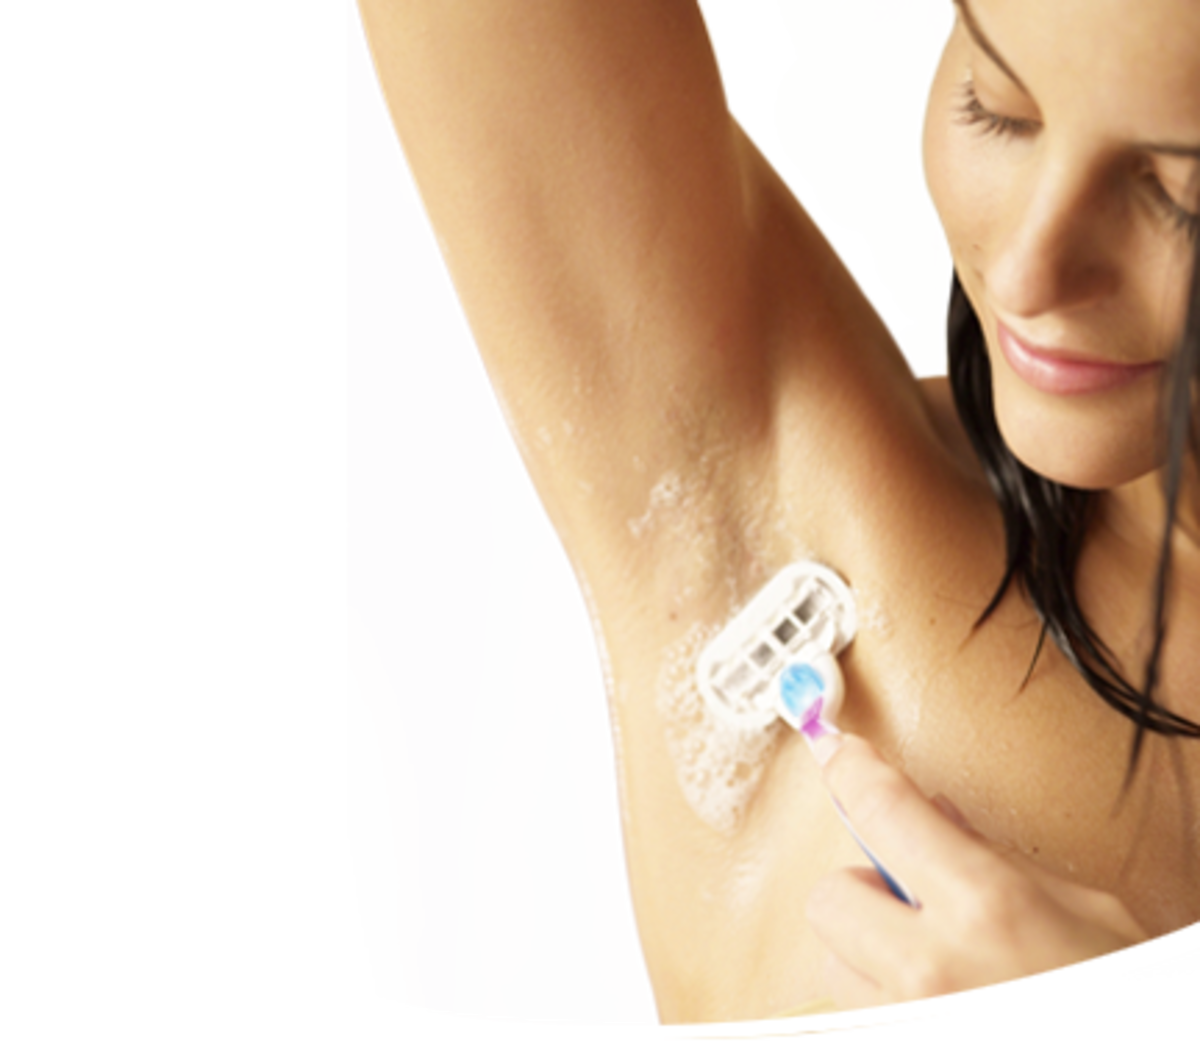 Shaving your underarms can be painful! (image source: www.gillettevenus.com)